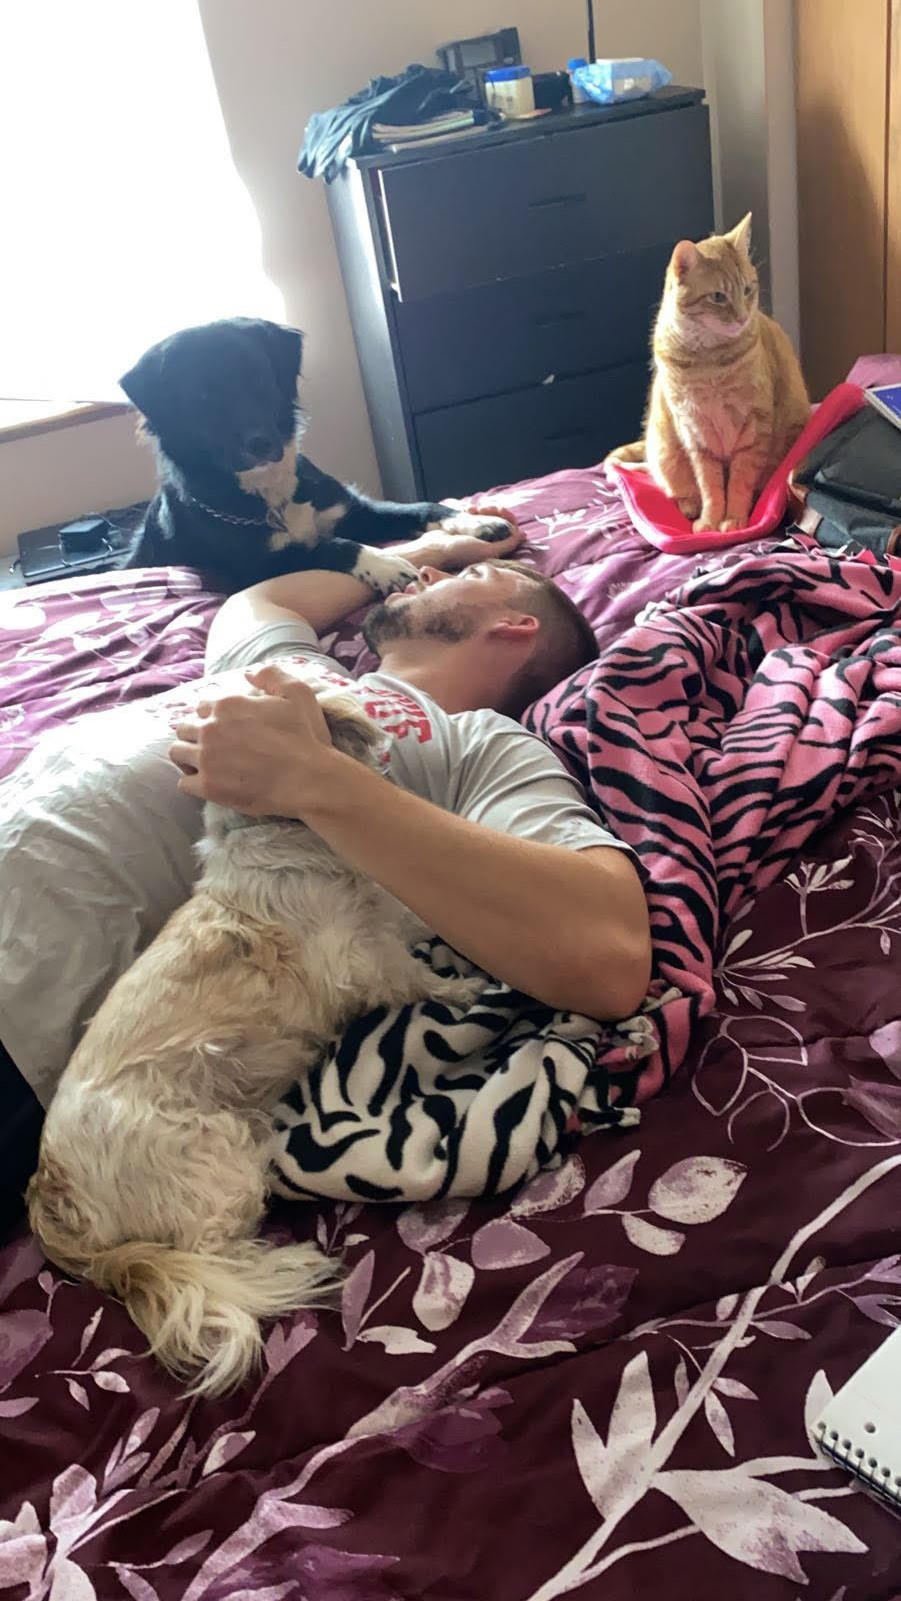 man laying on bed with a black dog, a white dog, and an orange cat